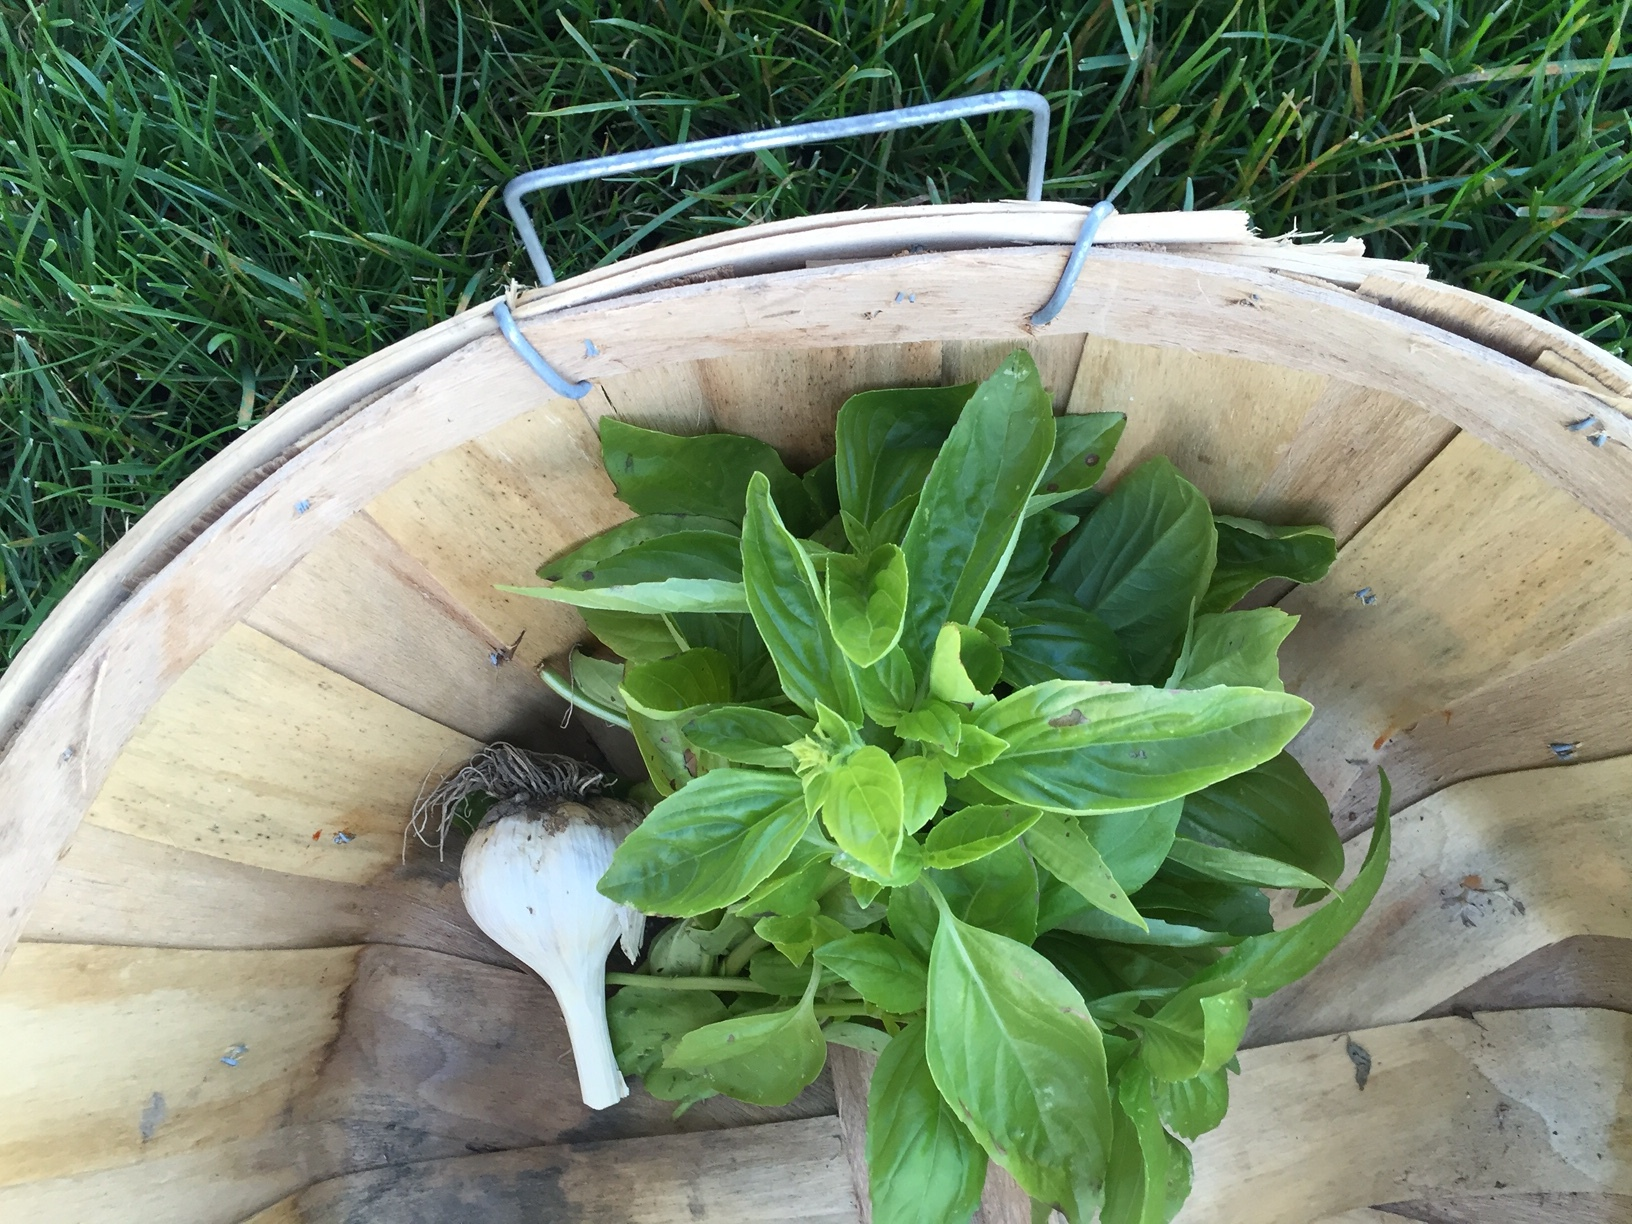 Basil from the Crowleys' Healthy Yard